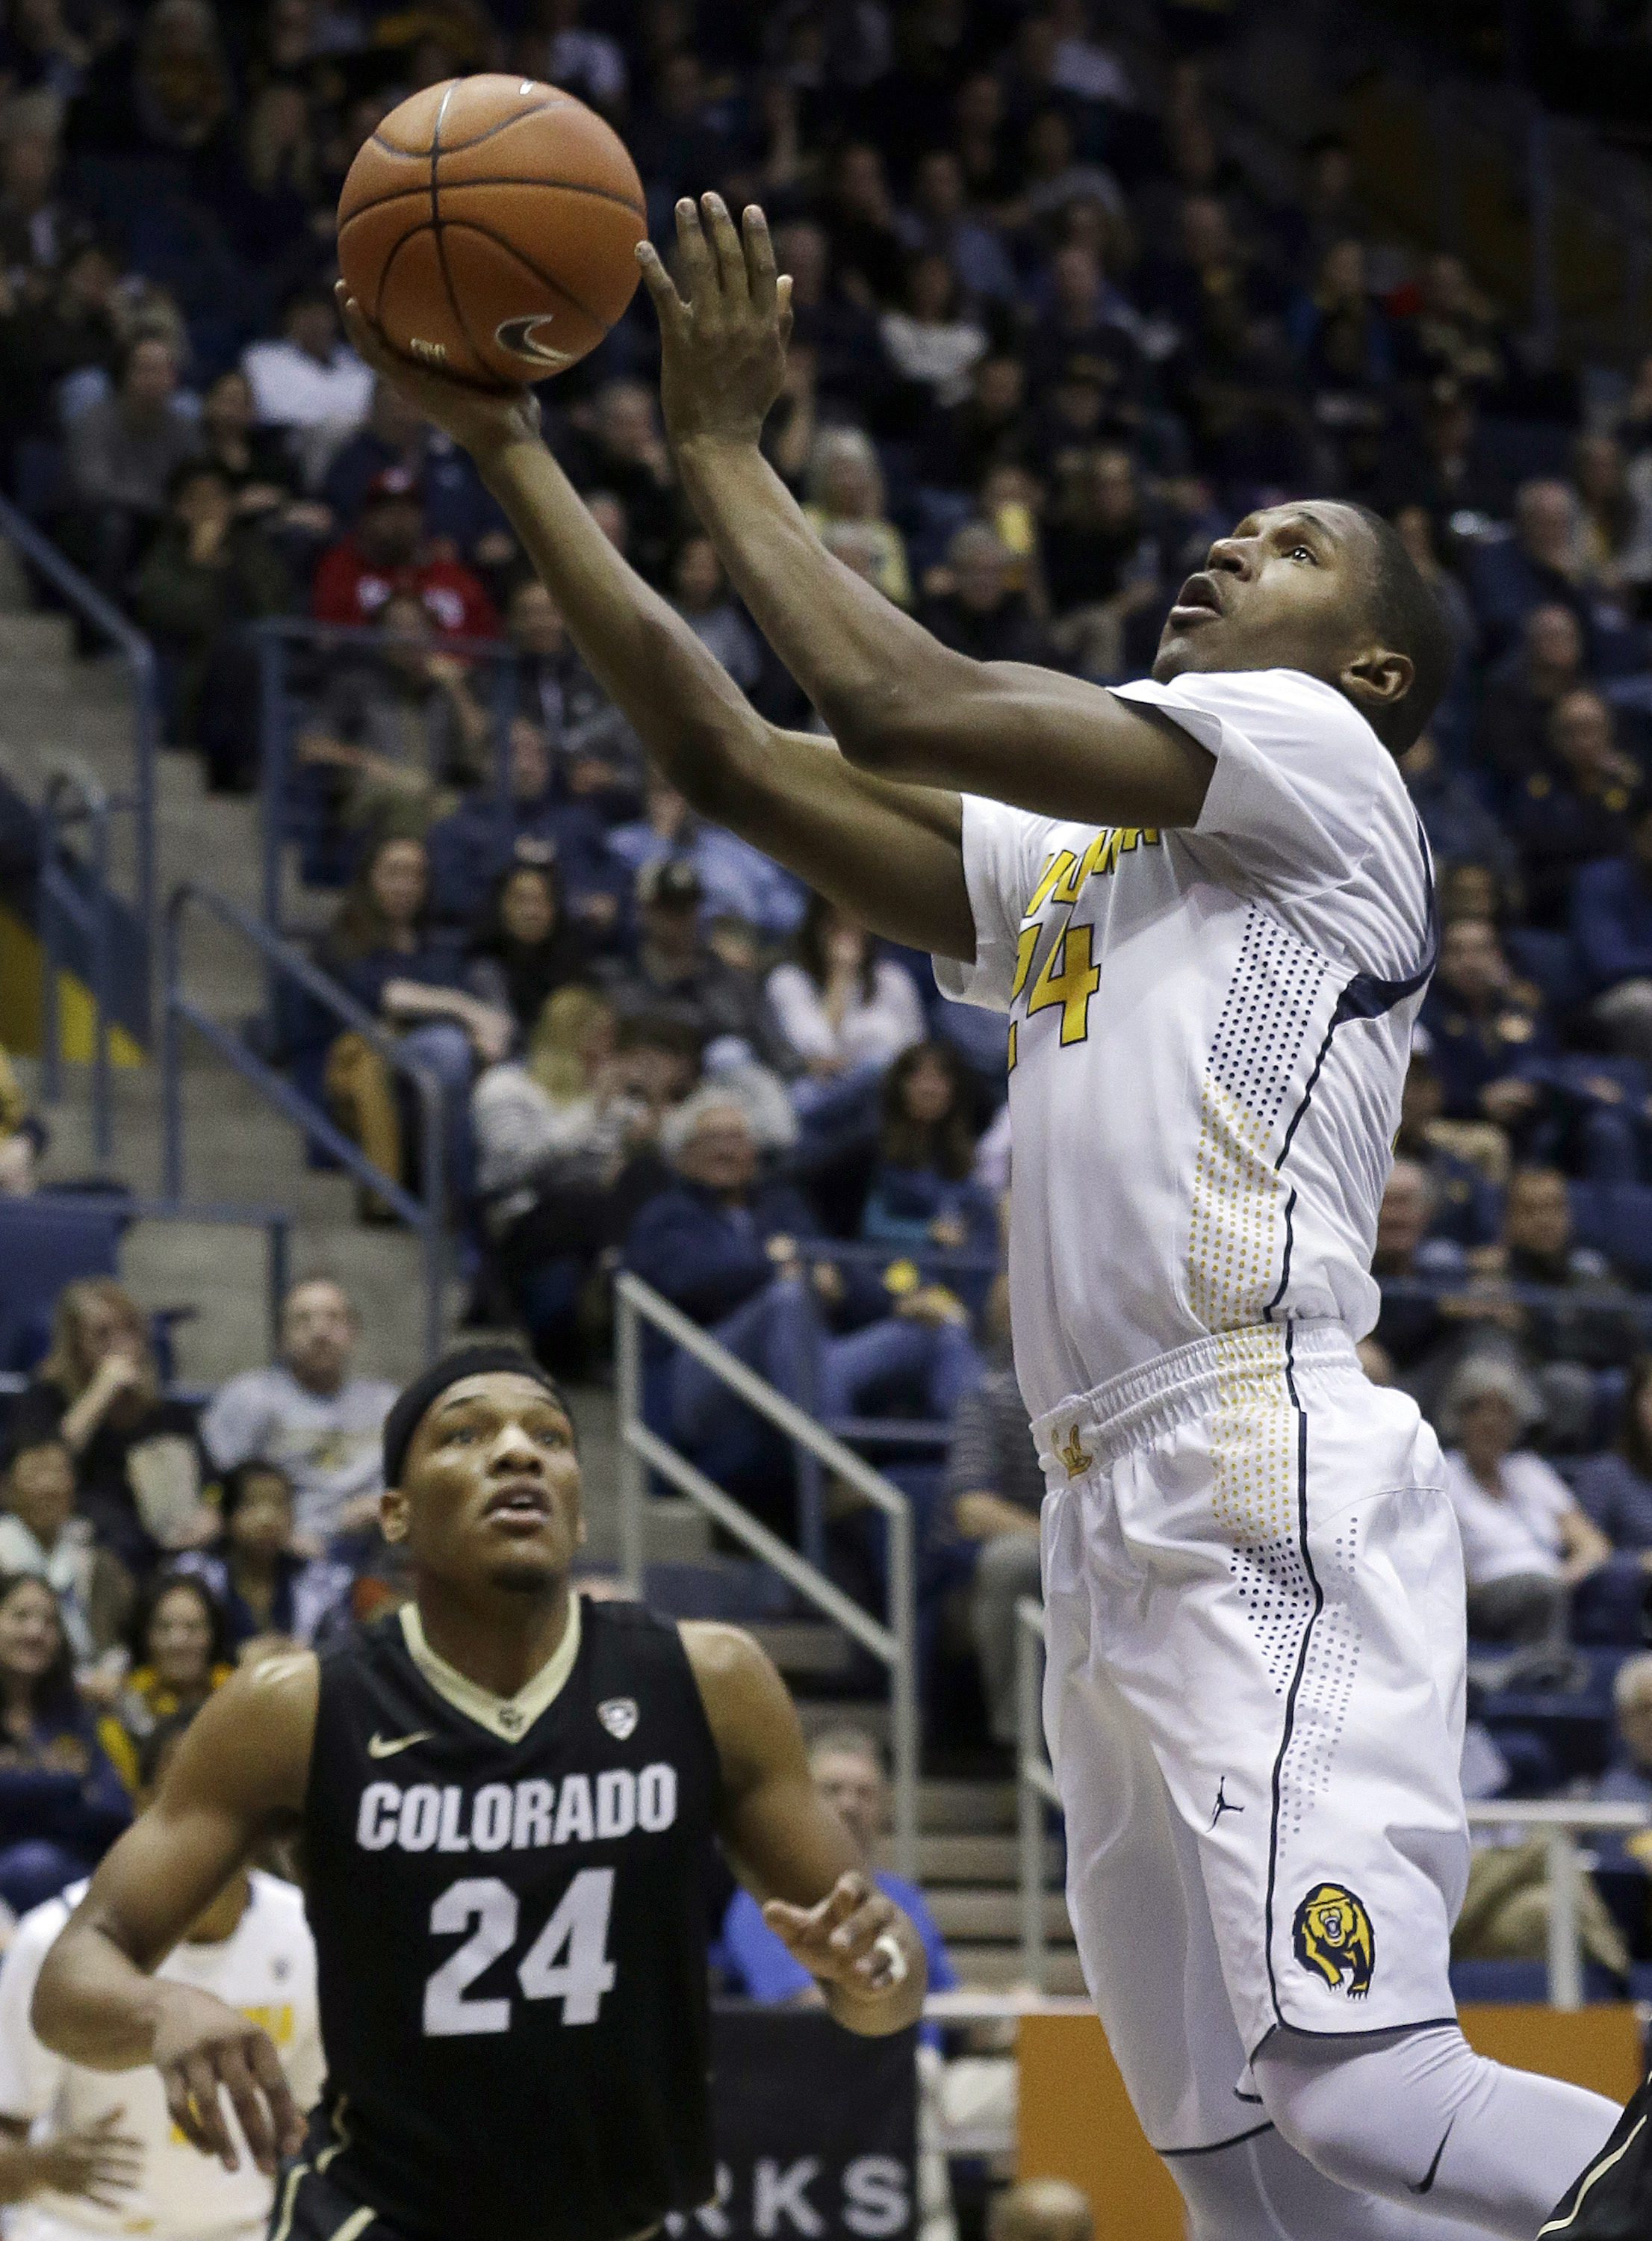 California guard Jordan Mathews, right, shoots against Colorado guard George King during the first half of an NCAA college basketball game in Berkeley, Calif., Friday, Jan. 1, 2016. (AP Photo/Jeff Chiu)